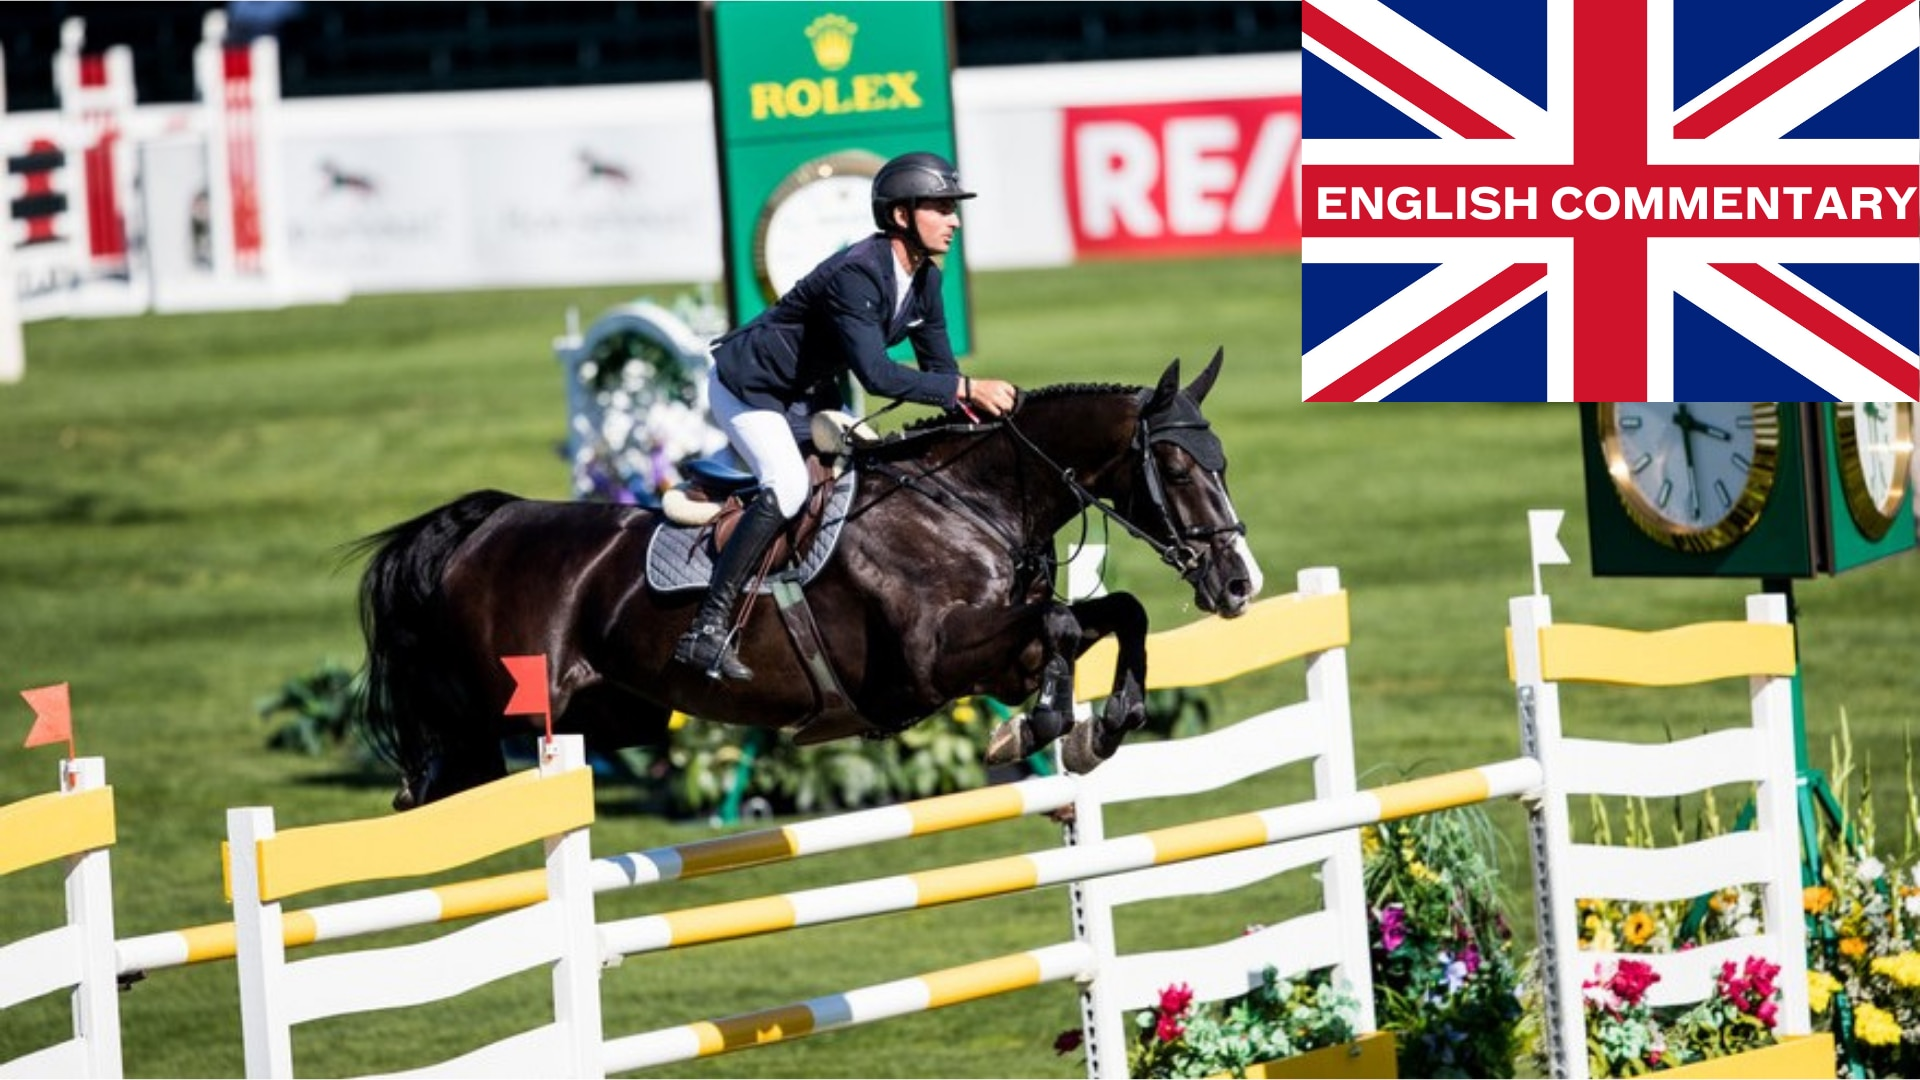 CP 'International' presented by ROLEX, English Commentary